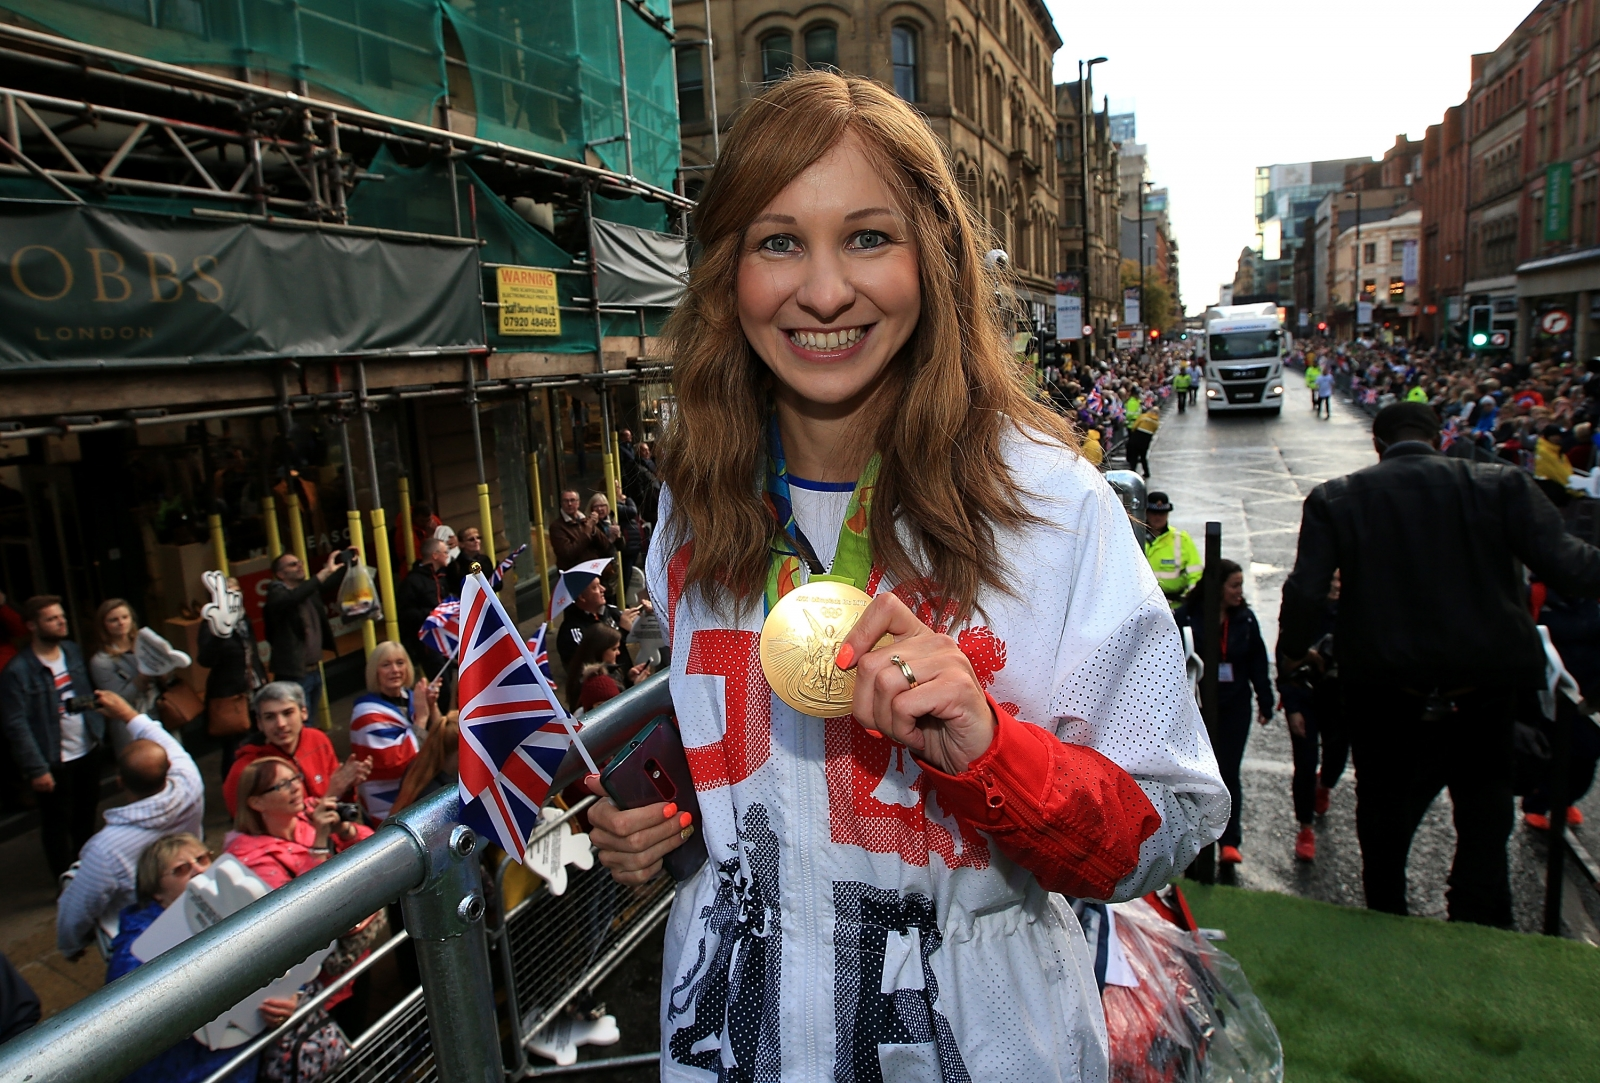 Double Olympic champion Joanna Rowsell Shand announces retirement